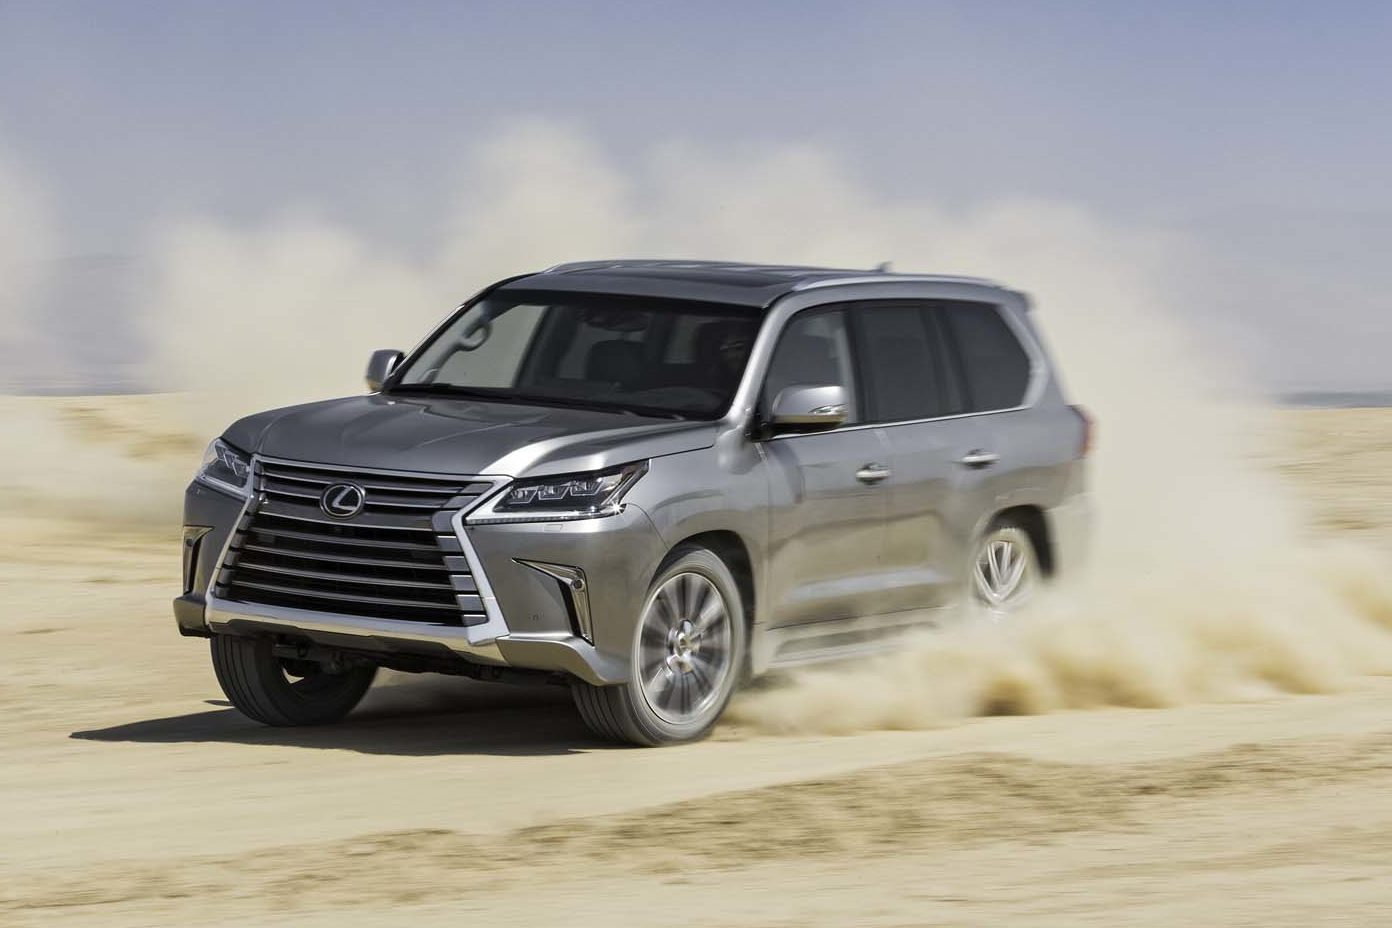 2016 Lexus LX 570 Front Three Quarter In Motion 02 E1477583454730